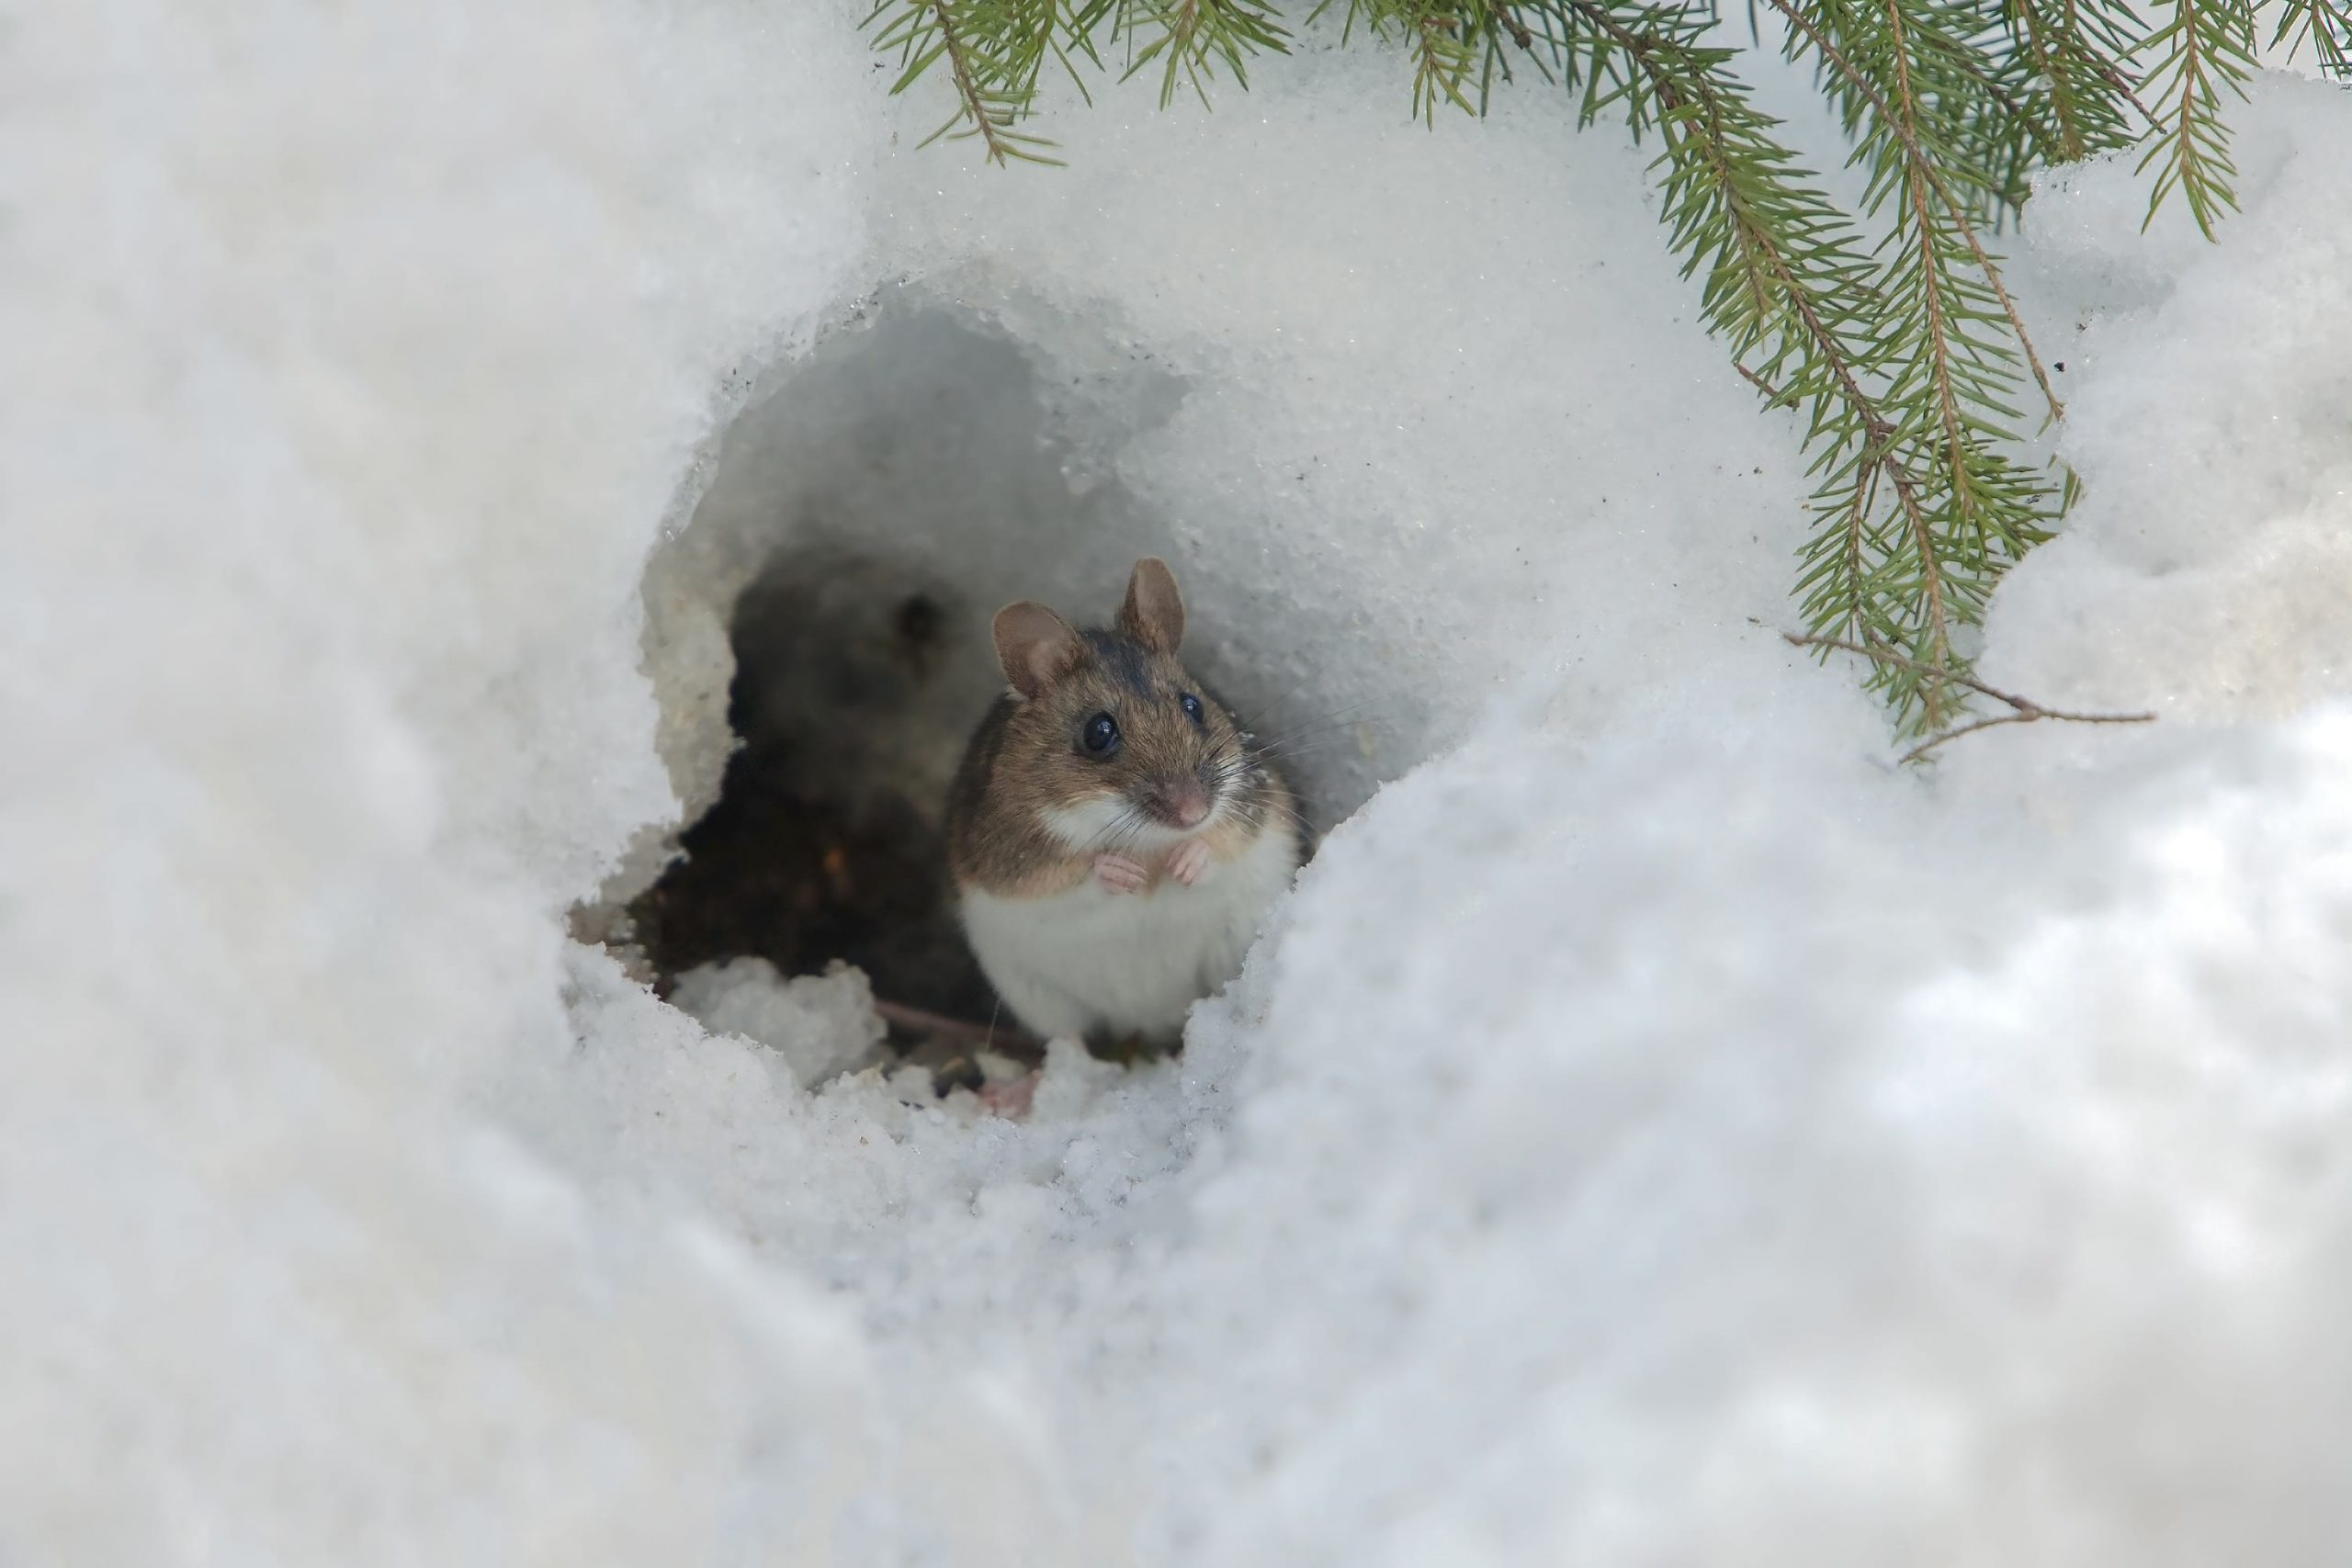 Where you can find Mice in your House During Winter